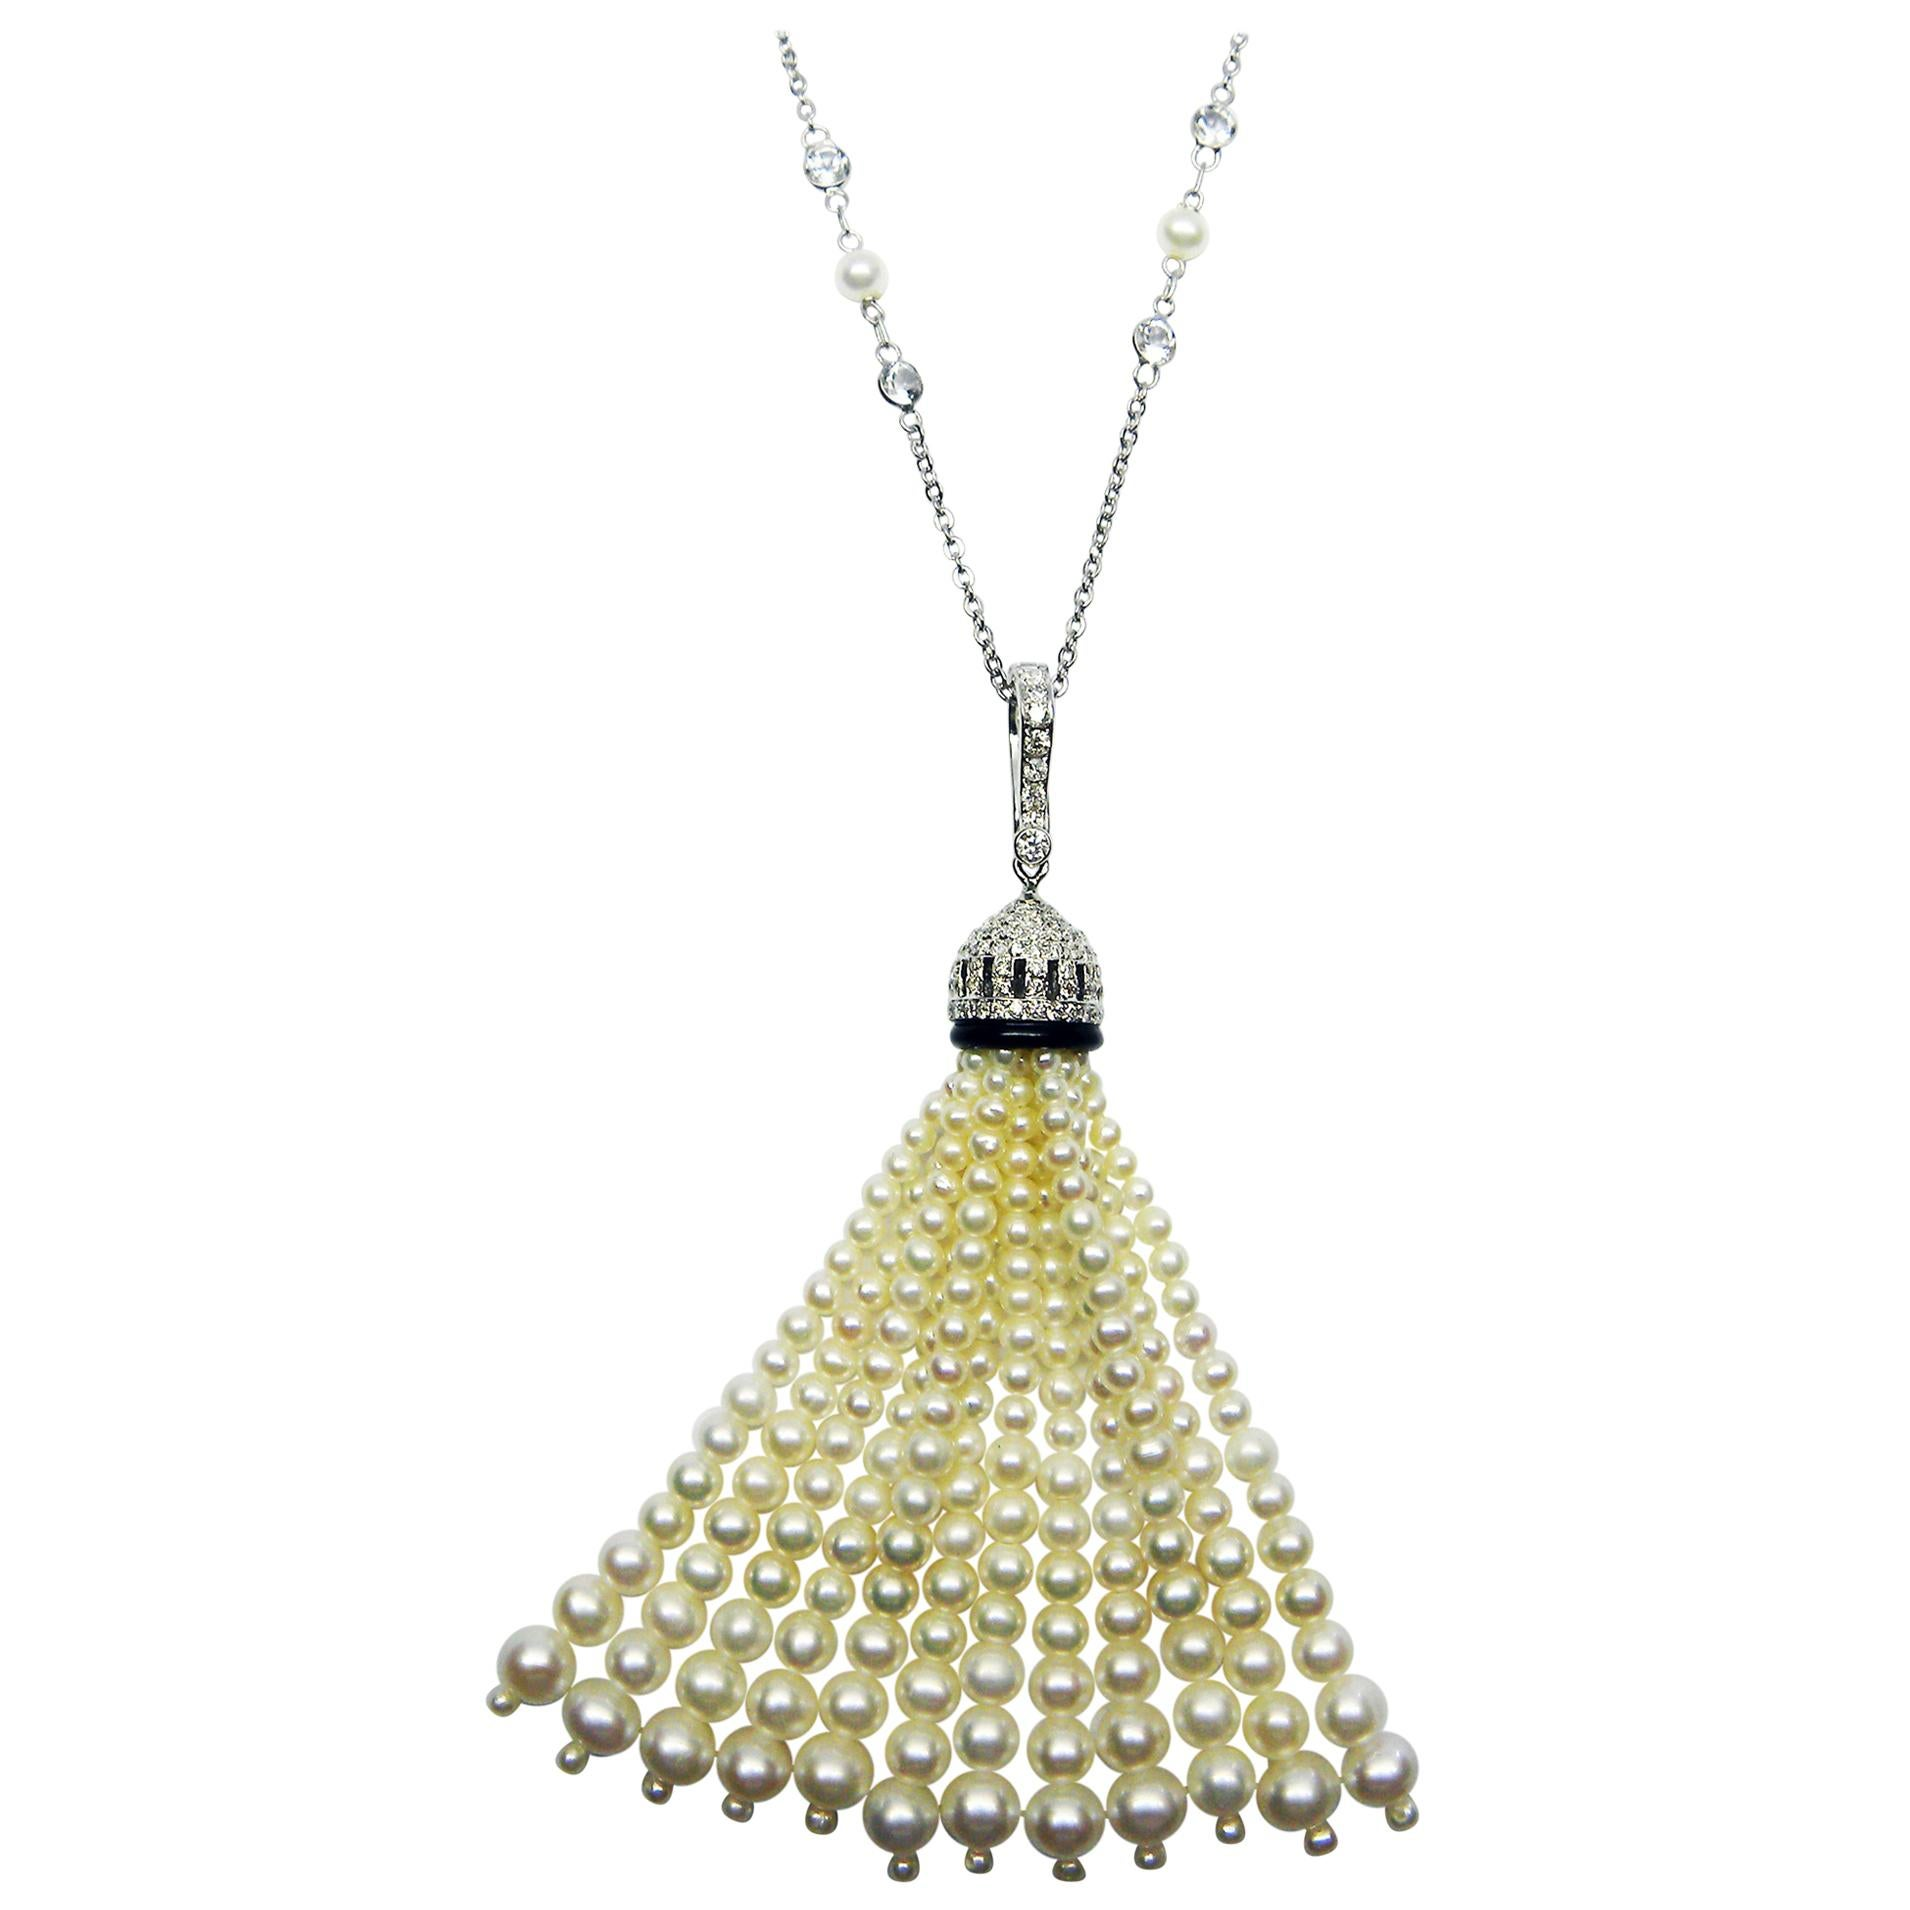 White Pearls, Black Onyx, and White Diamond Gold Tassel Necklace